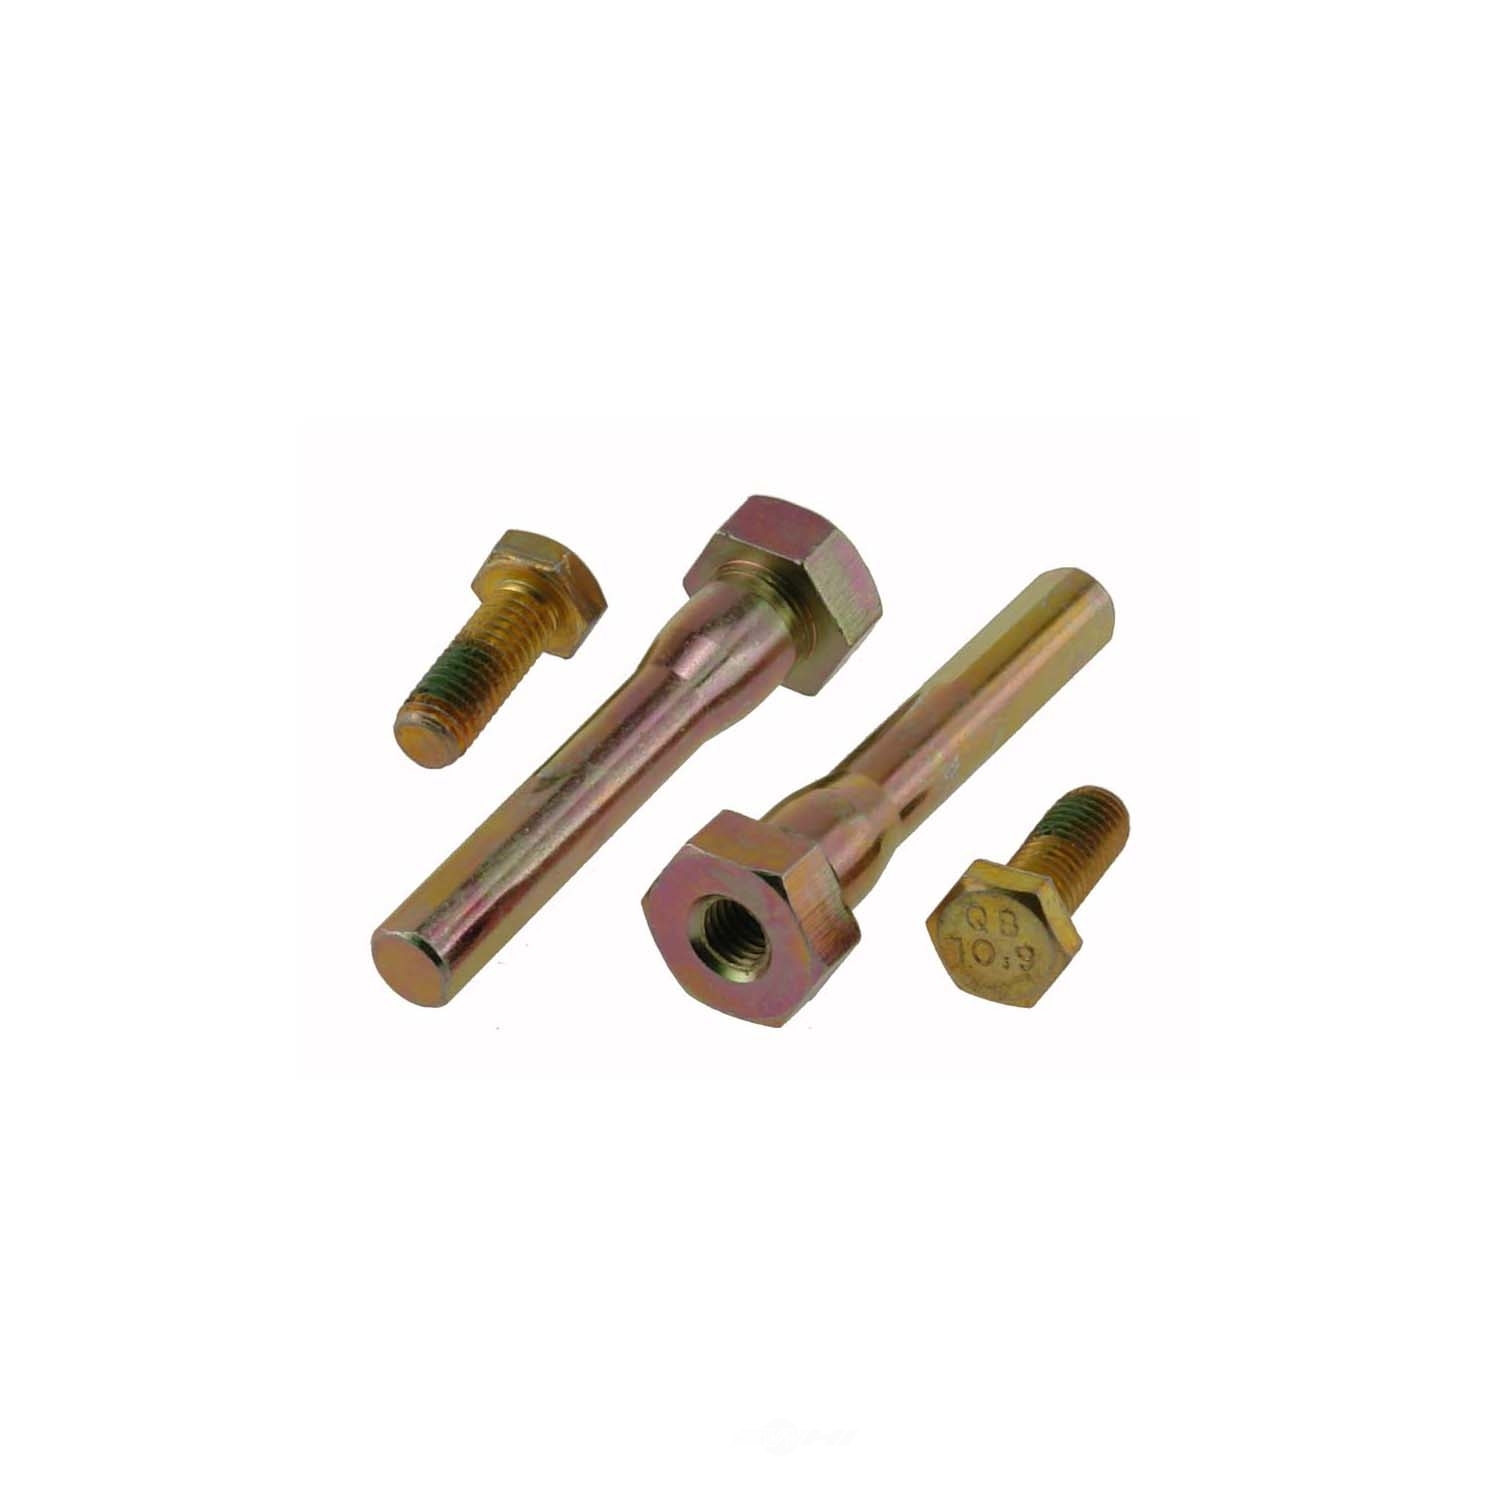 CARLSON QUALITY BRAKE PARTS - Disc Brake Caliper Guide Pin Kit (Rear) - CRL 14163